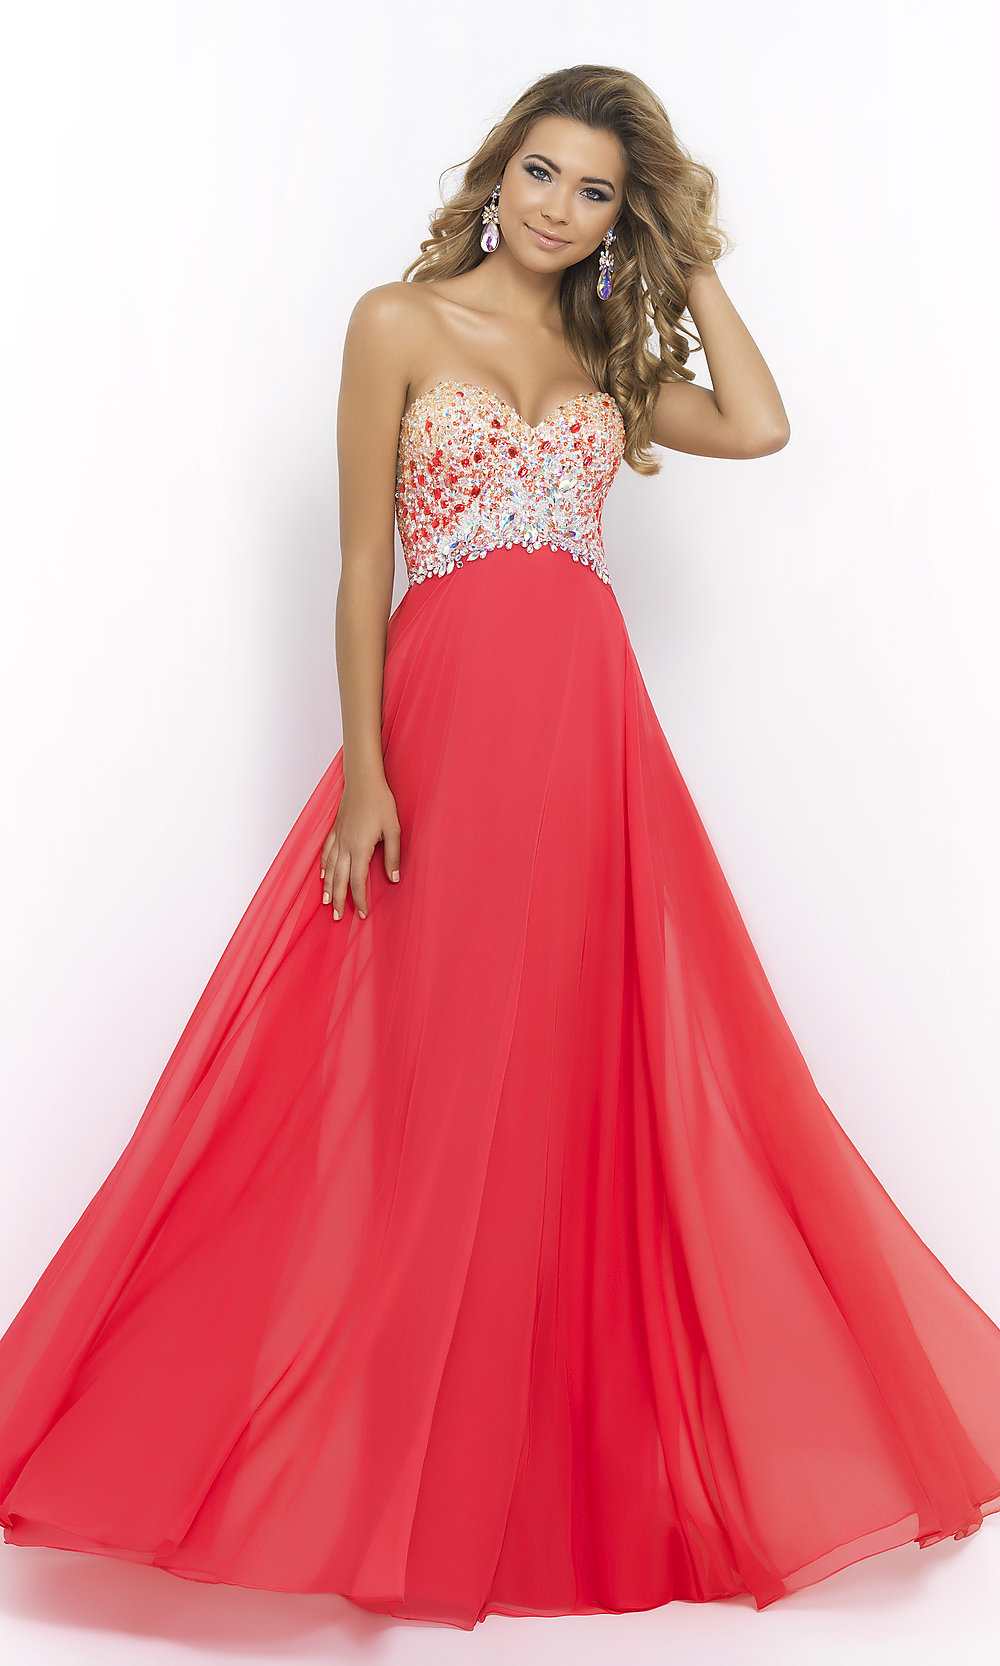 Strapless A-line Prom Gown Blush Long Prom Dress